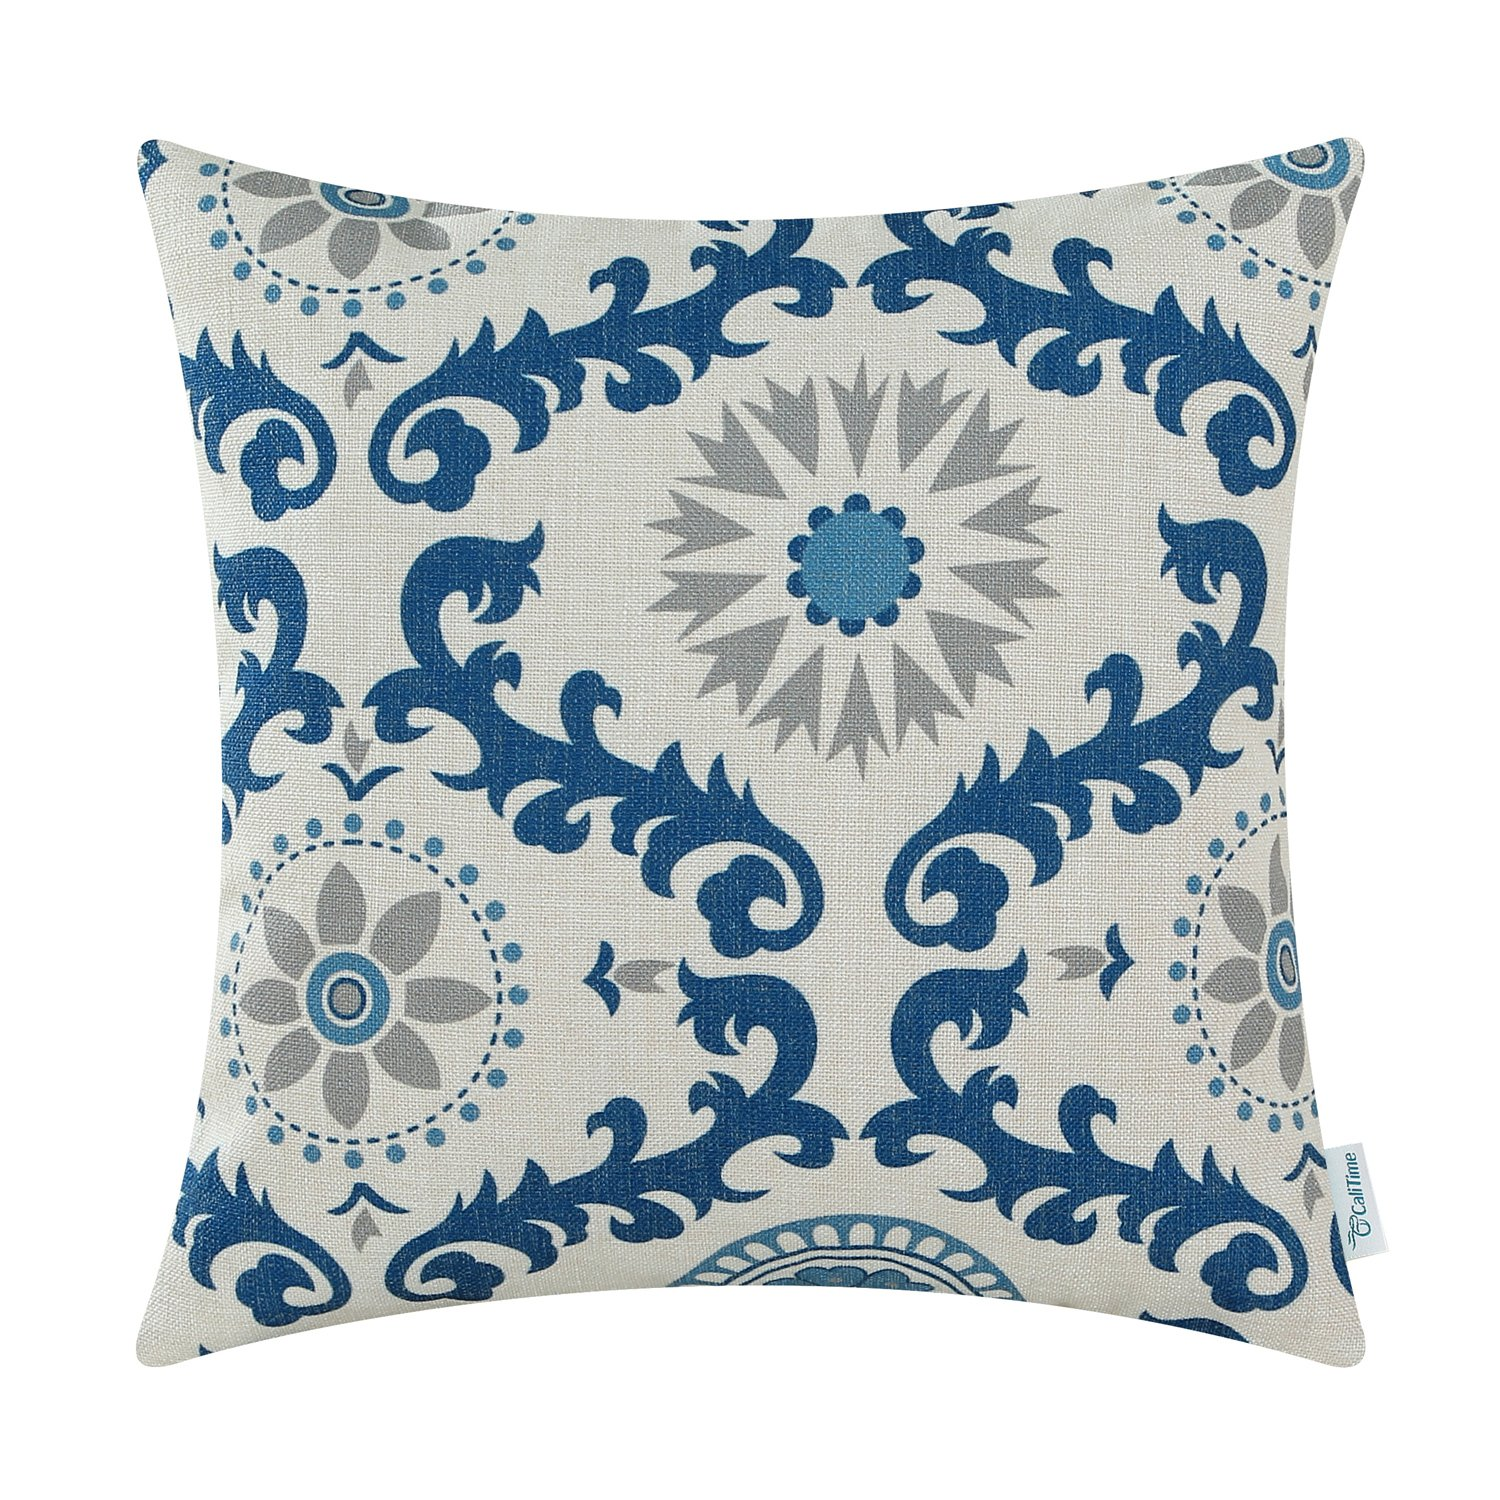 CaliTime Canvas Throw Pillow Cover Case for Couch Sofa Home Decoration Three-Tone Dahlia Floral Compass Geometric 18 X 18 inches Blue/Gray